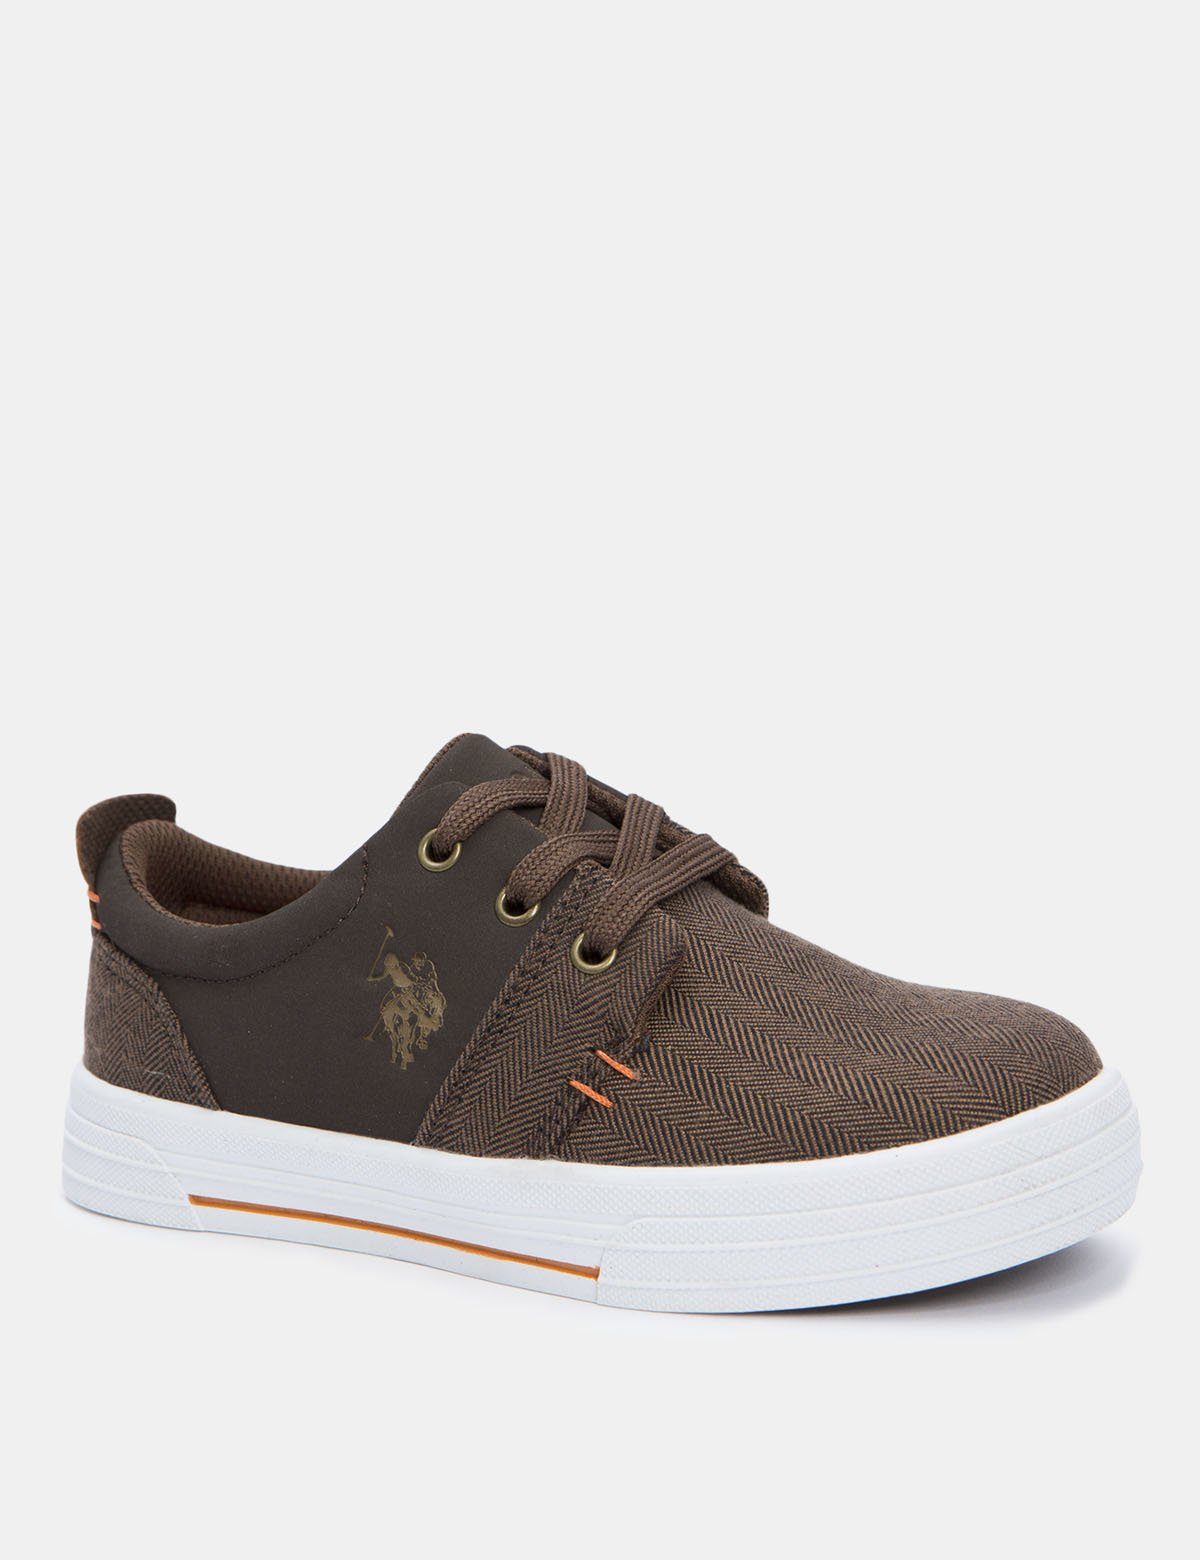 BOYS HARVEY SNEAKER - U.S. Polo Assn.